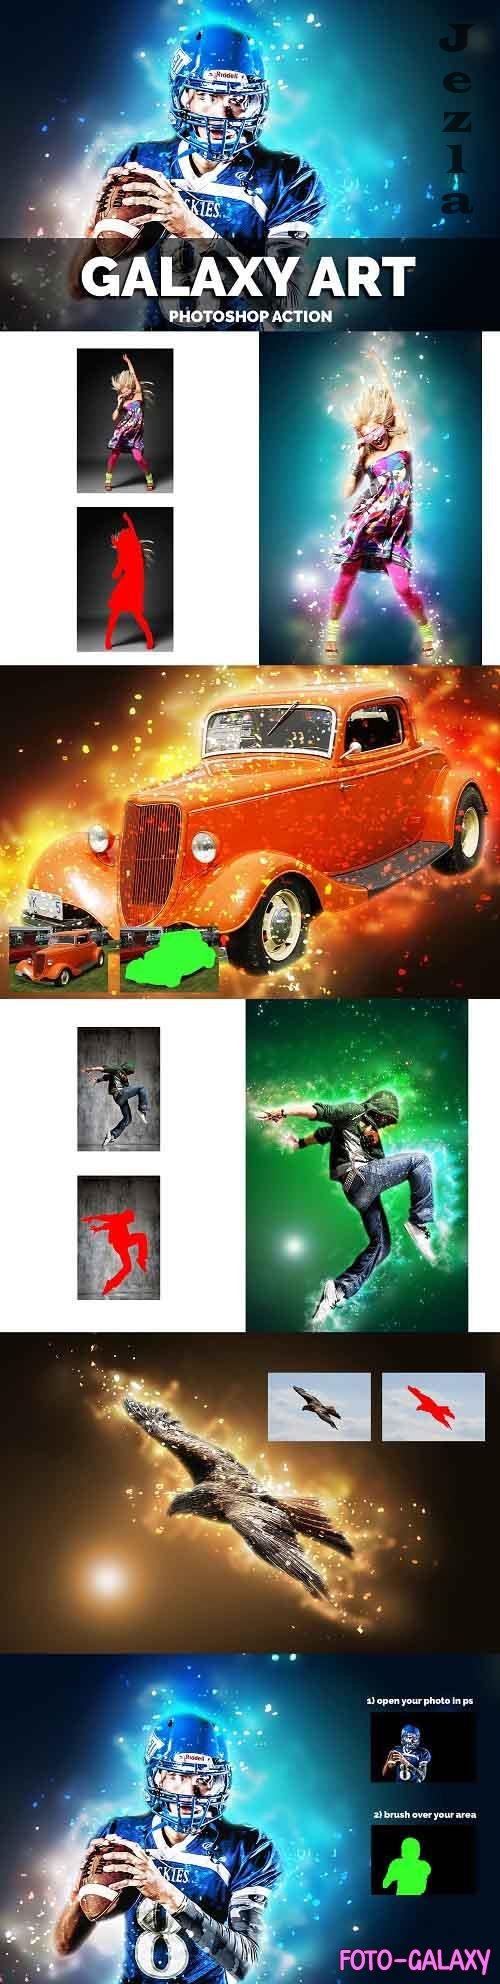 Galaxy Art Photoshop Action - 3762608